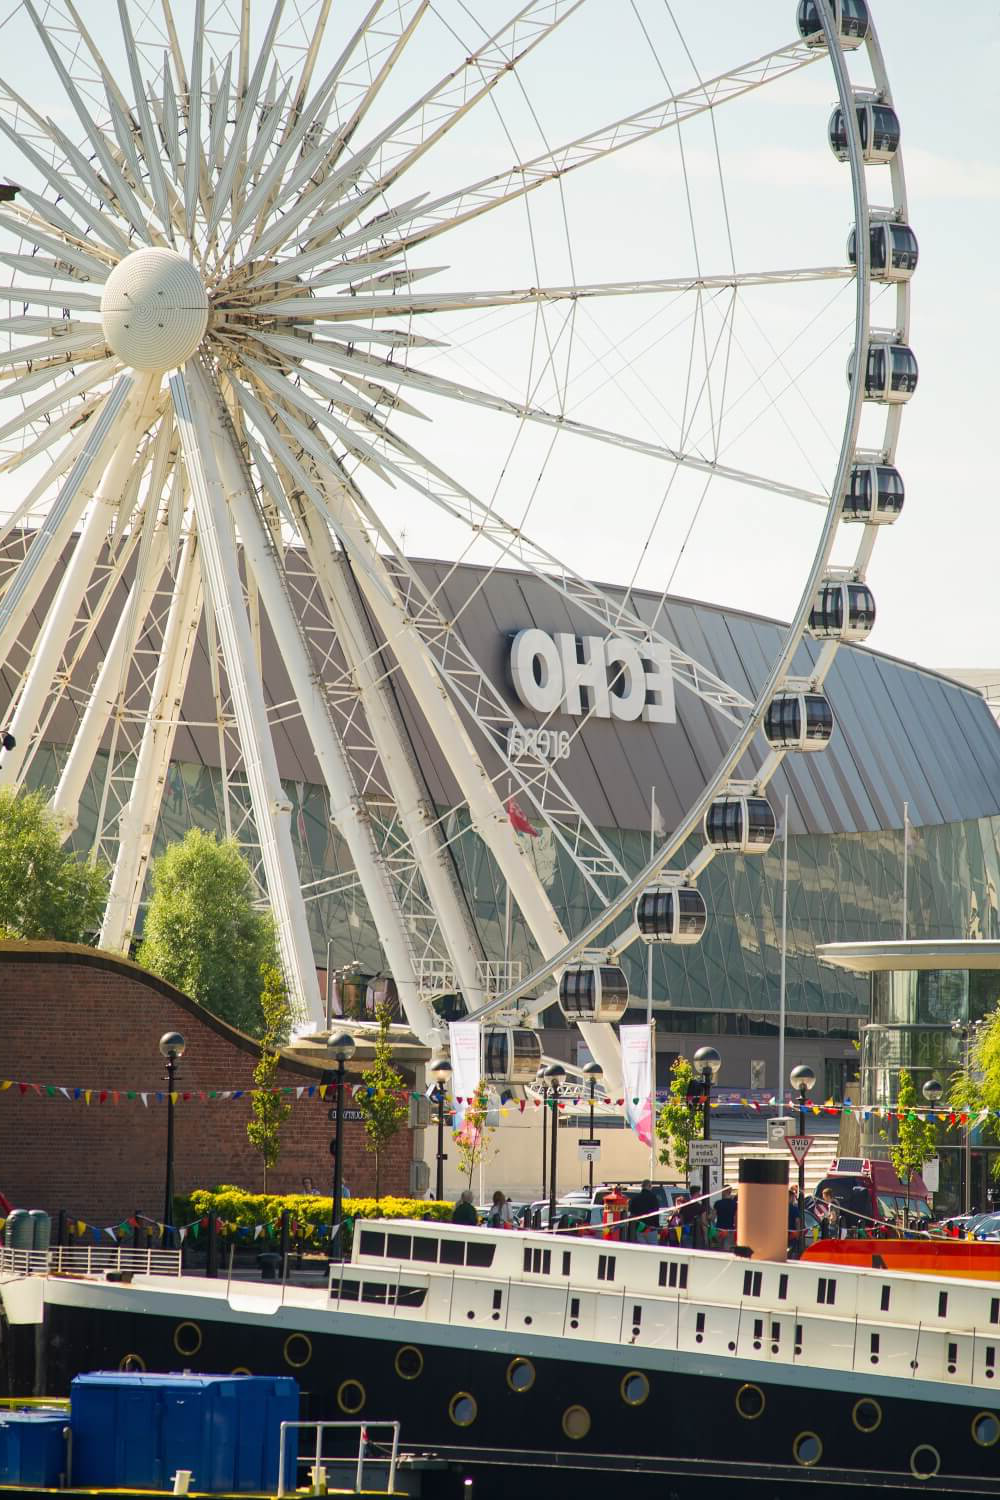 A giant ferris wheel outside the M&S Bank Arena (previously Echo Arena) in 利物浦